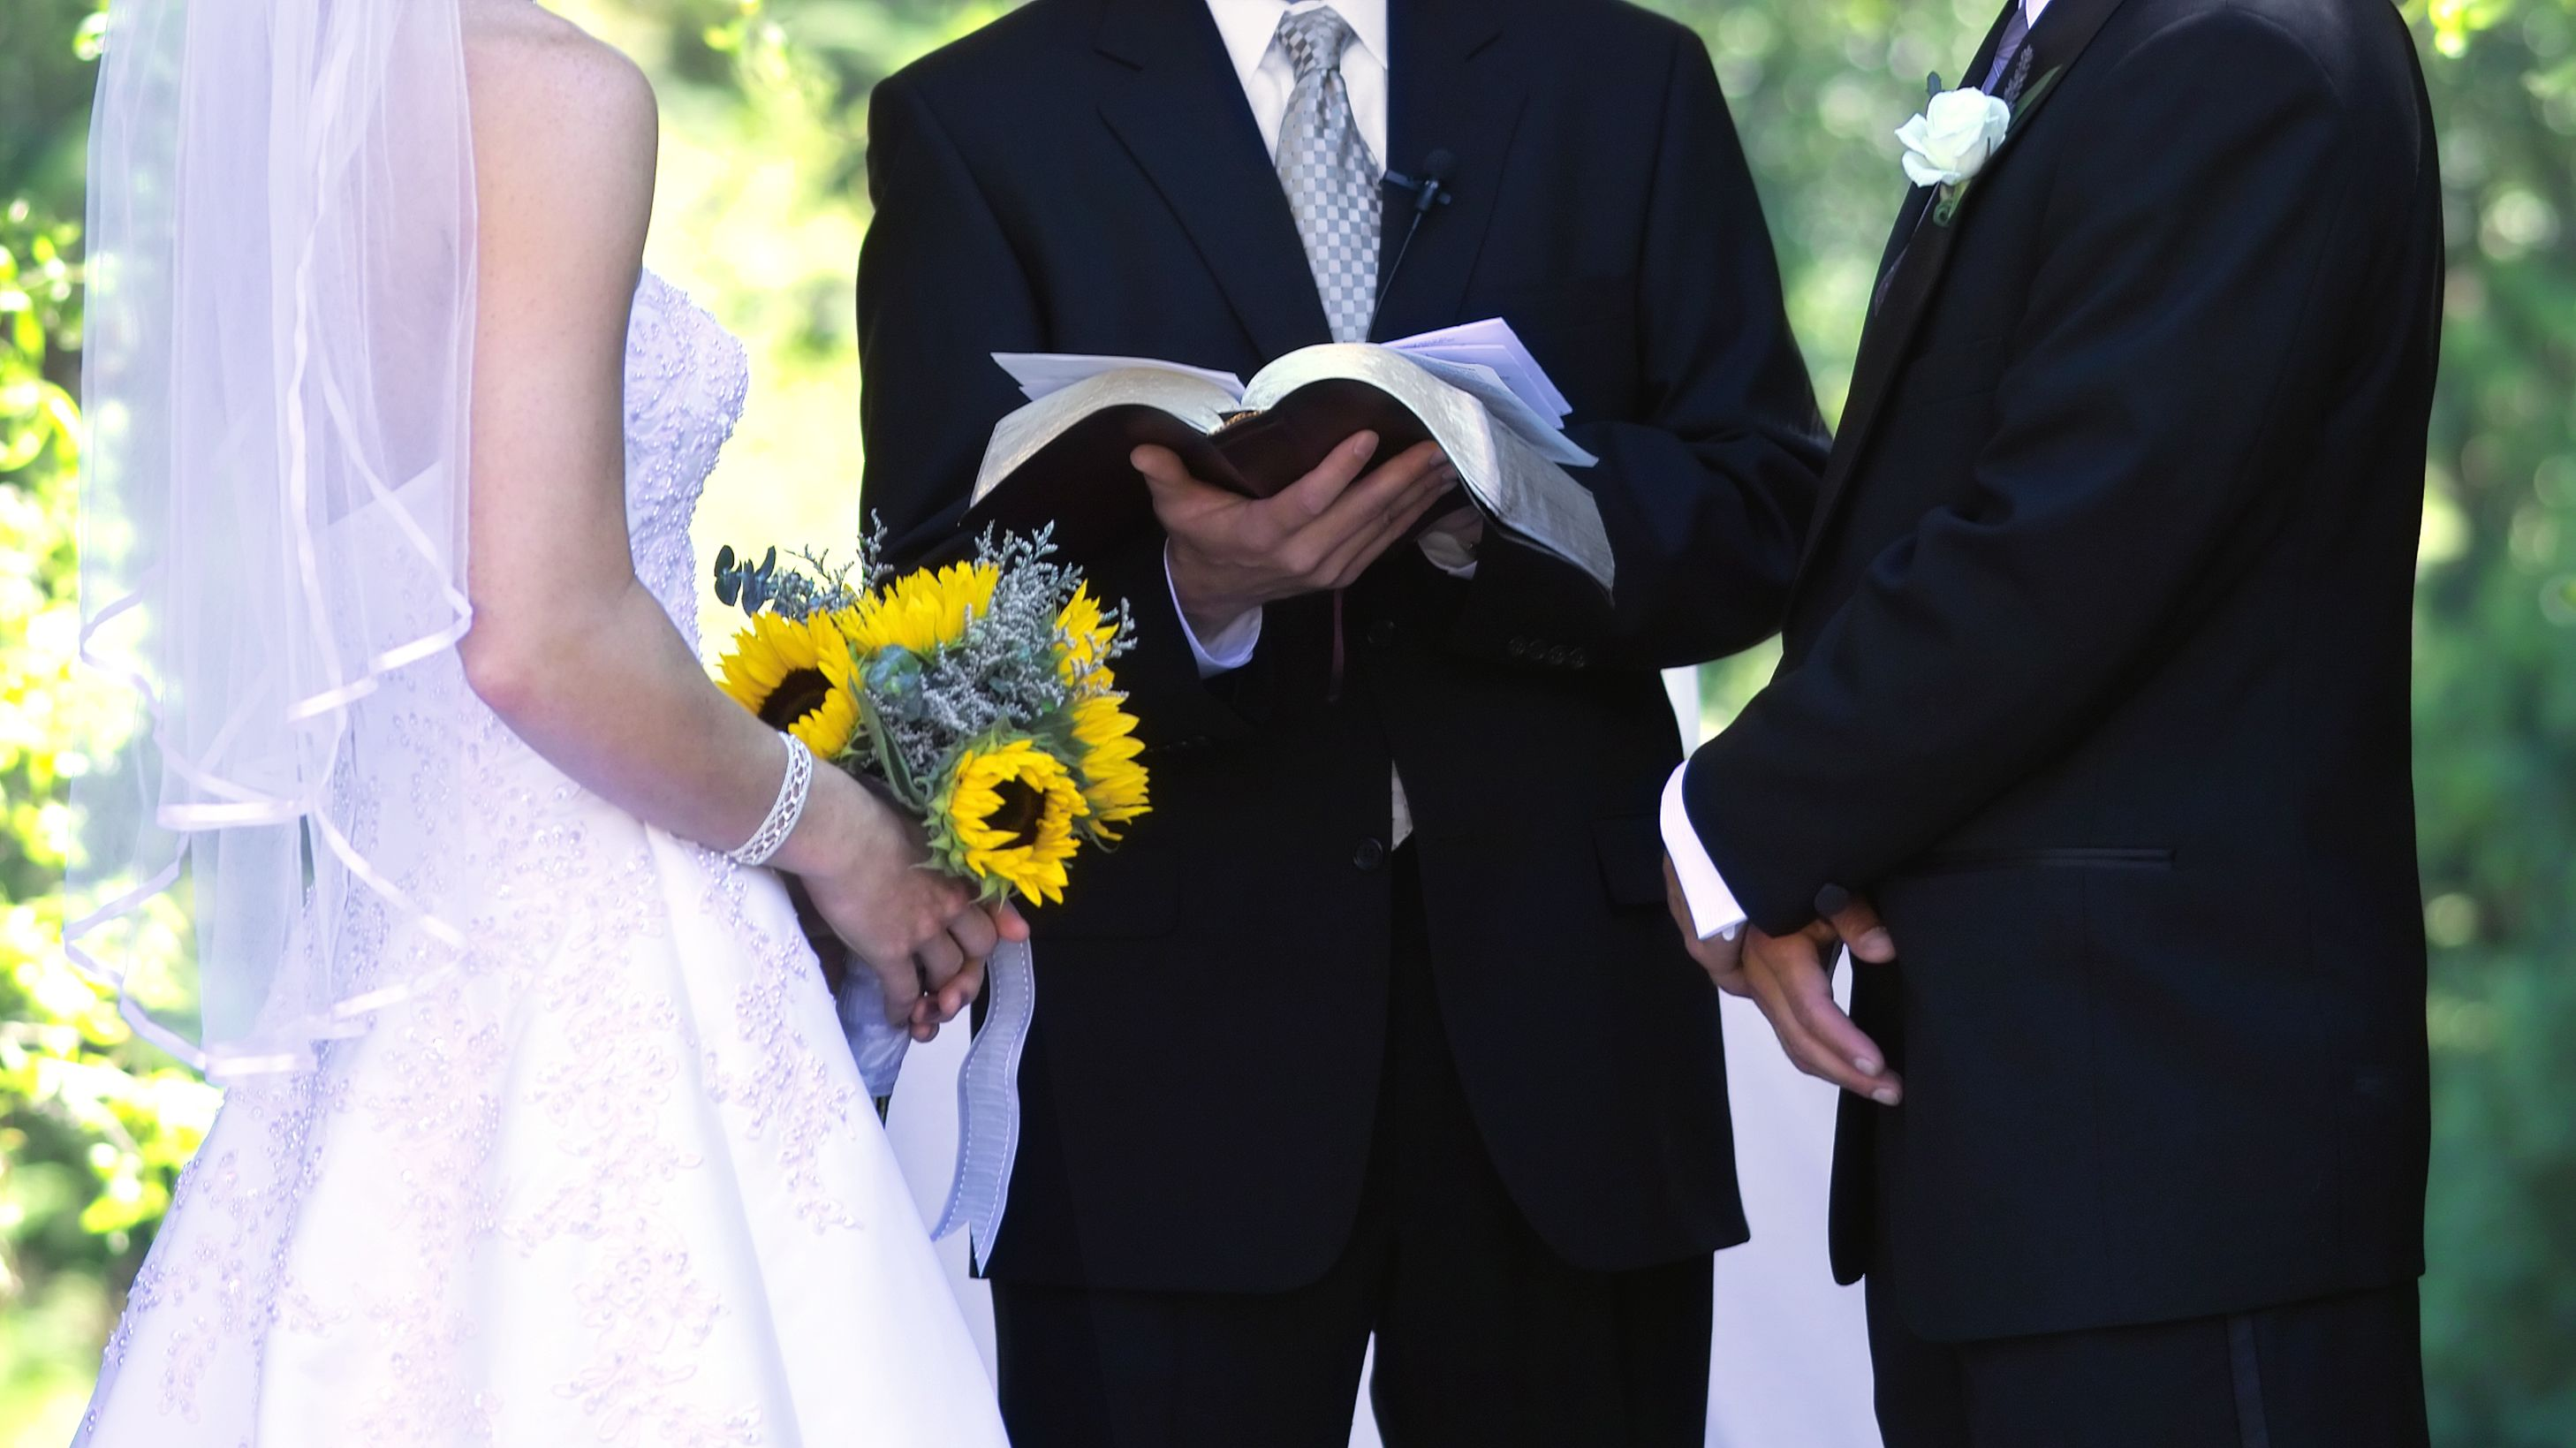 The Reason Why Grooms Stand to the Right of Brides